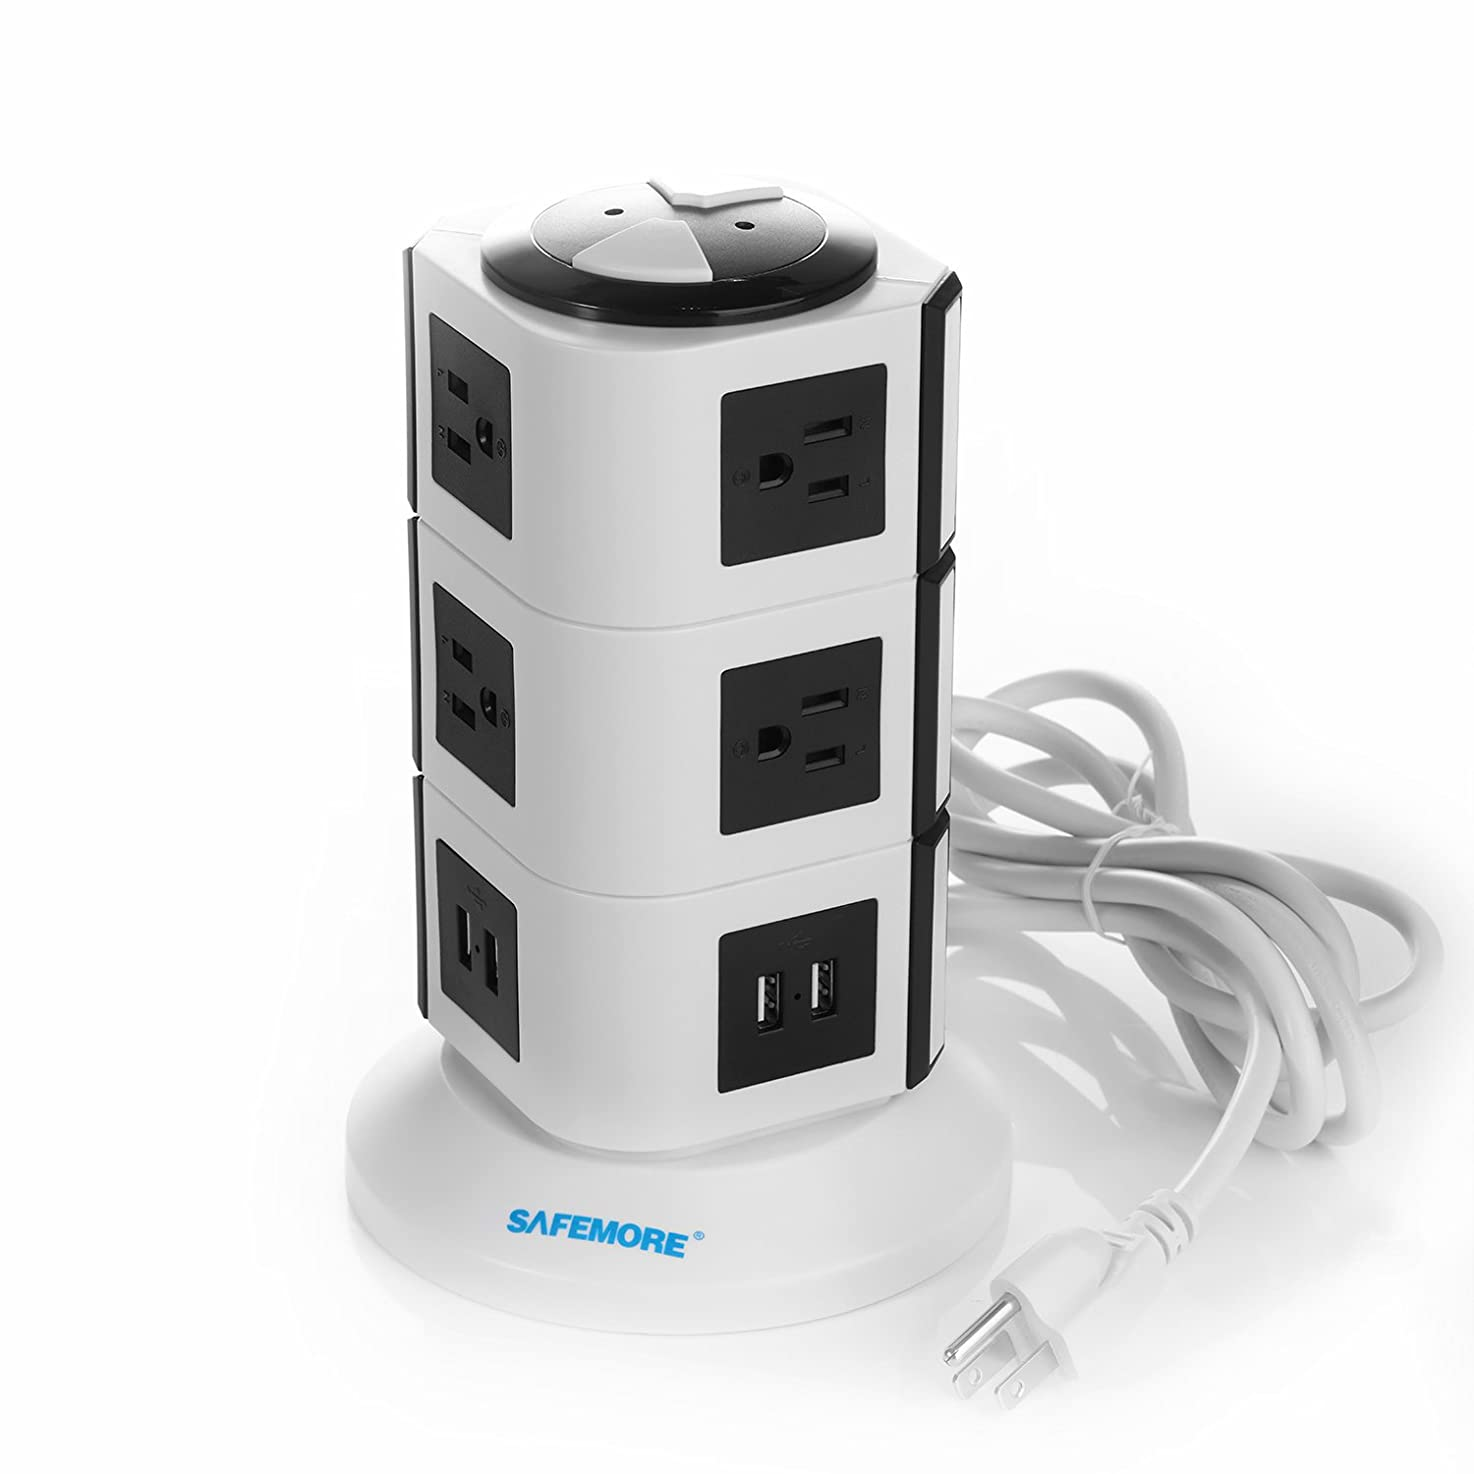 SAFEMORE USB Power Strip 10-Outlet Charging Station and 4 Smart USB Ports with 6.5-Feet Power Cord (White+Black)